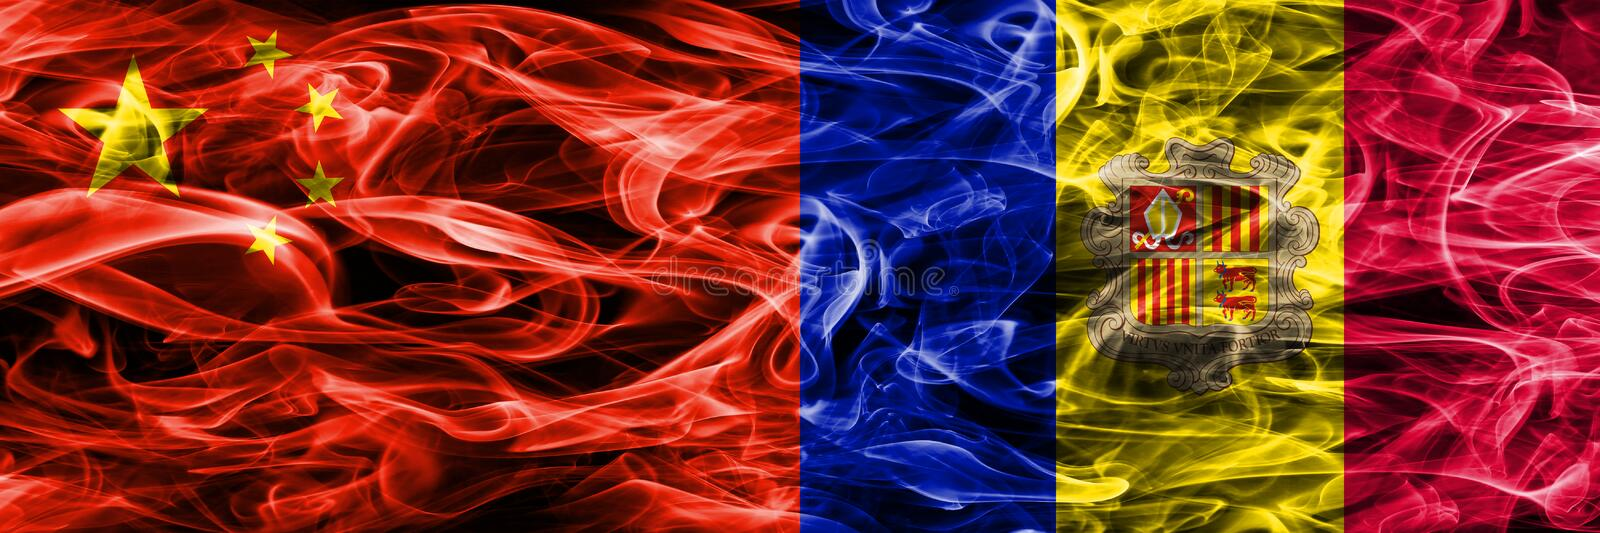 China vs Andorra smoke flags placed side by side stock illustration